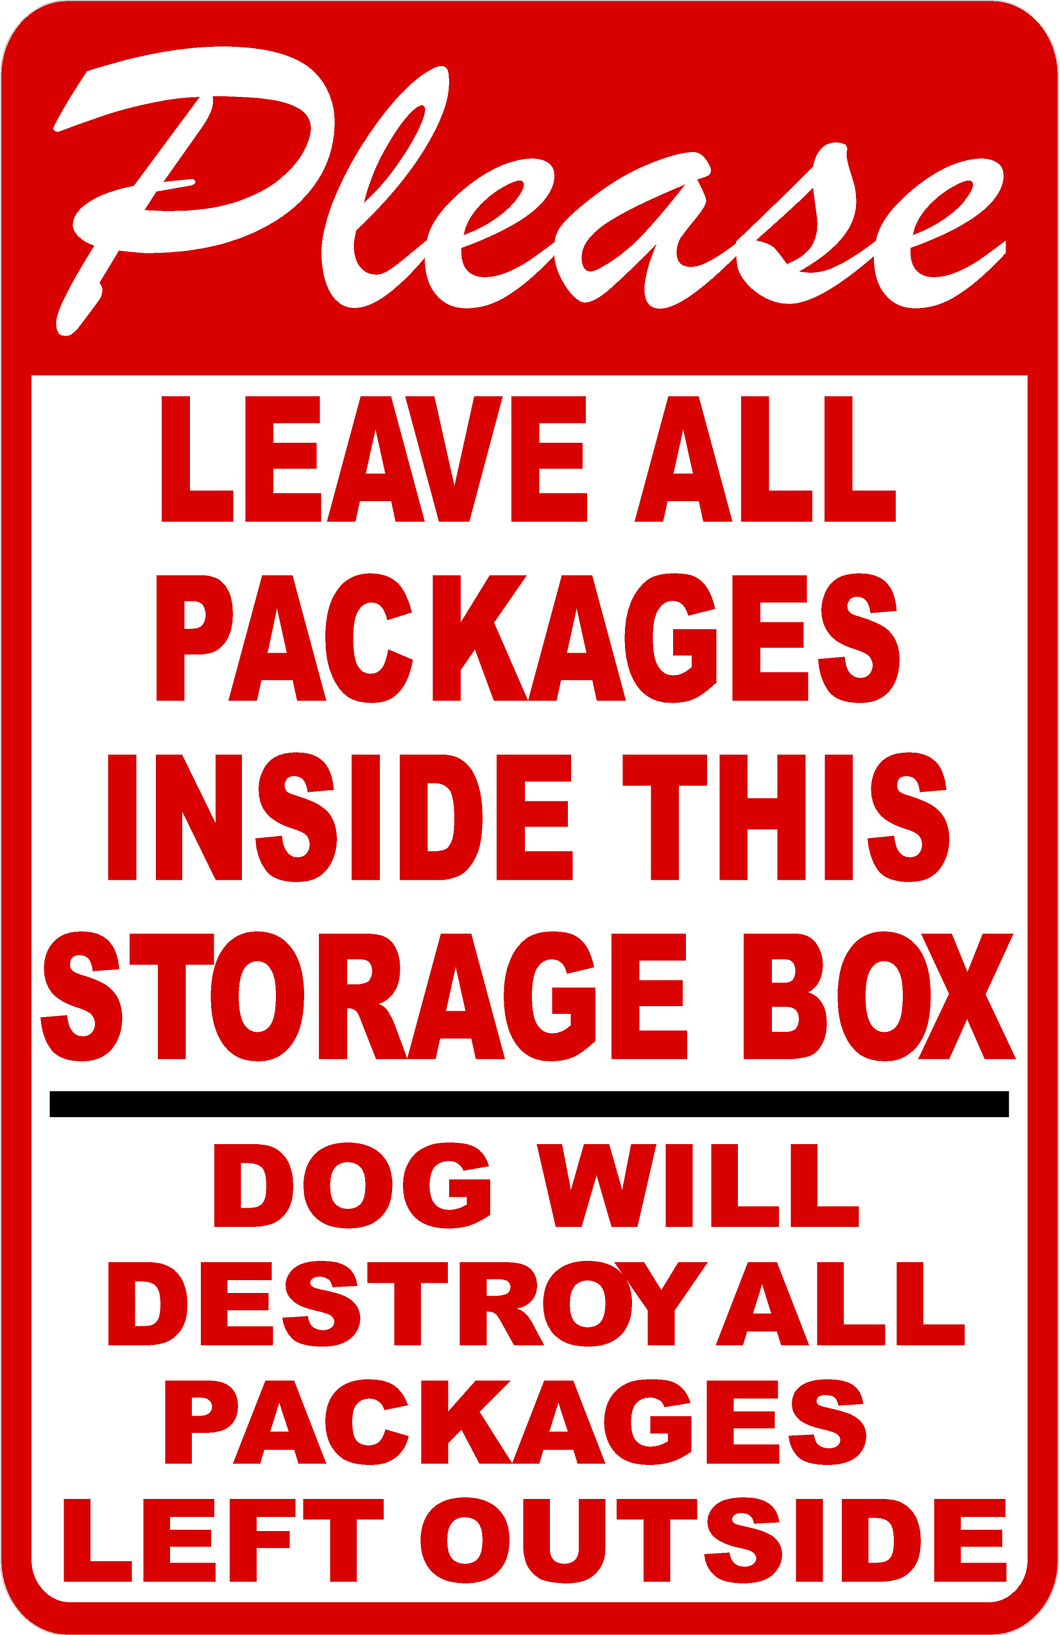 Please Leave All Packages Inside of Storage Box Dog Will Destroy Sign